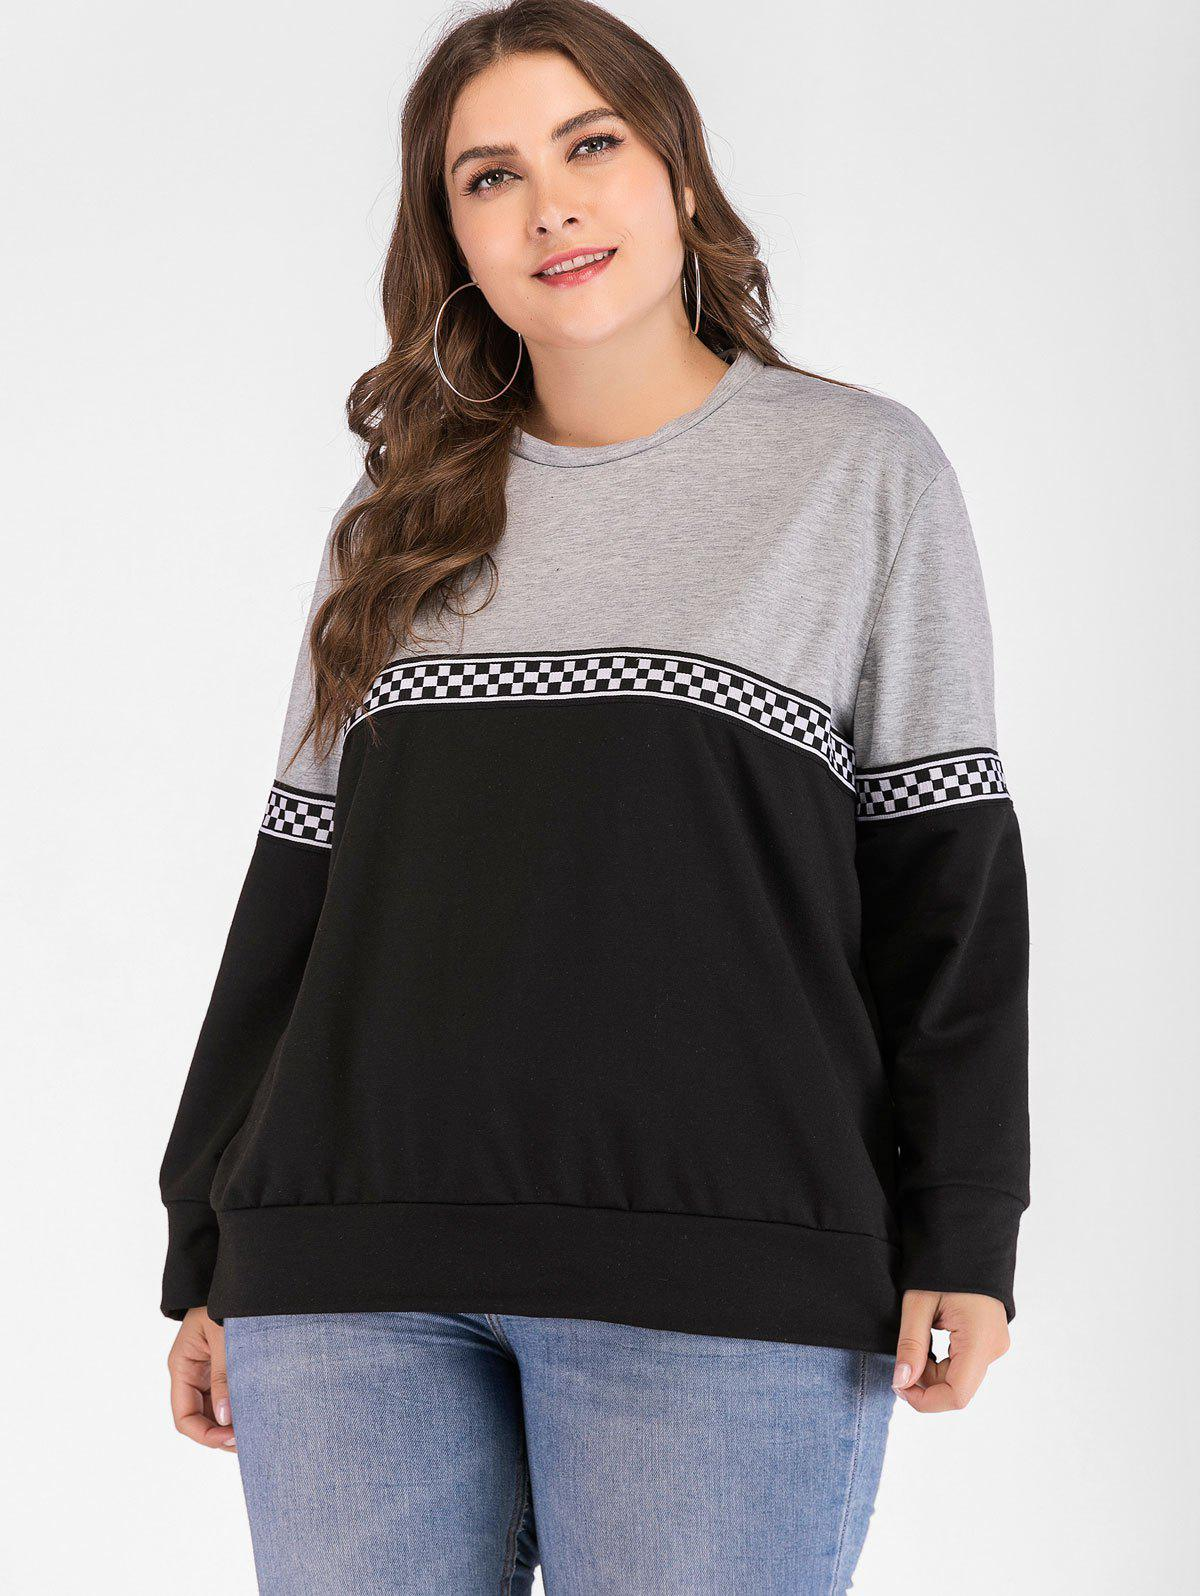 New Checked Print Plus Size Color Block Sweatshirt